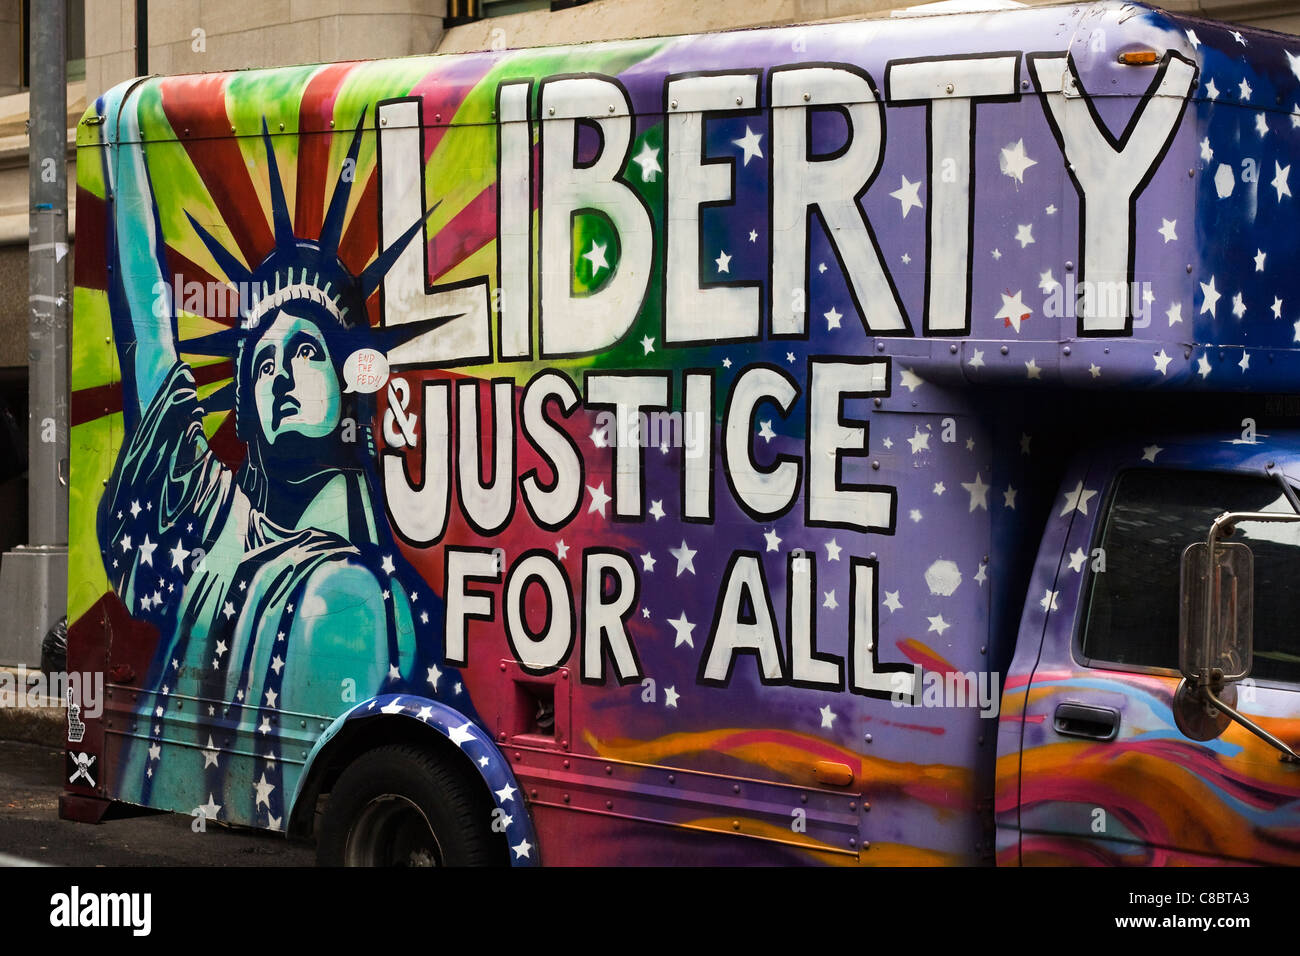 The Statue of Liberty painted on the side of a truck with the words, 'Liberty & Justice for All' at - Stock Image